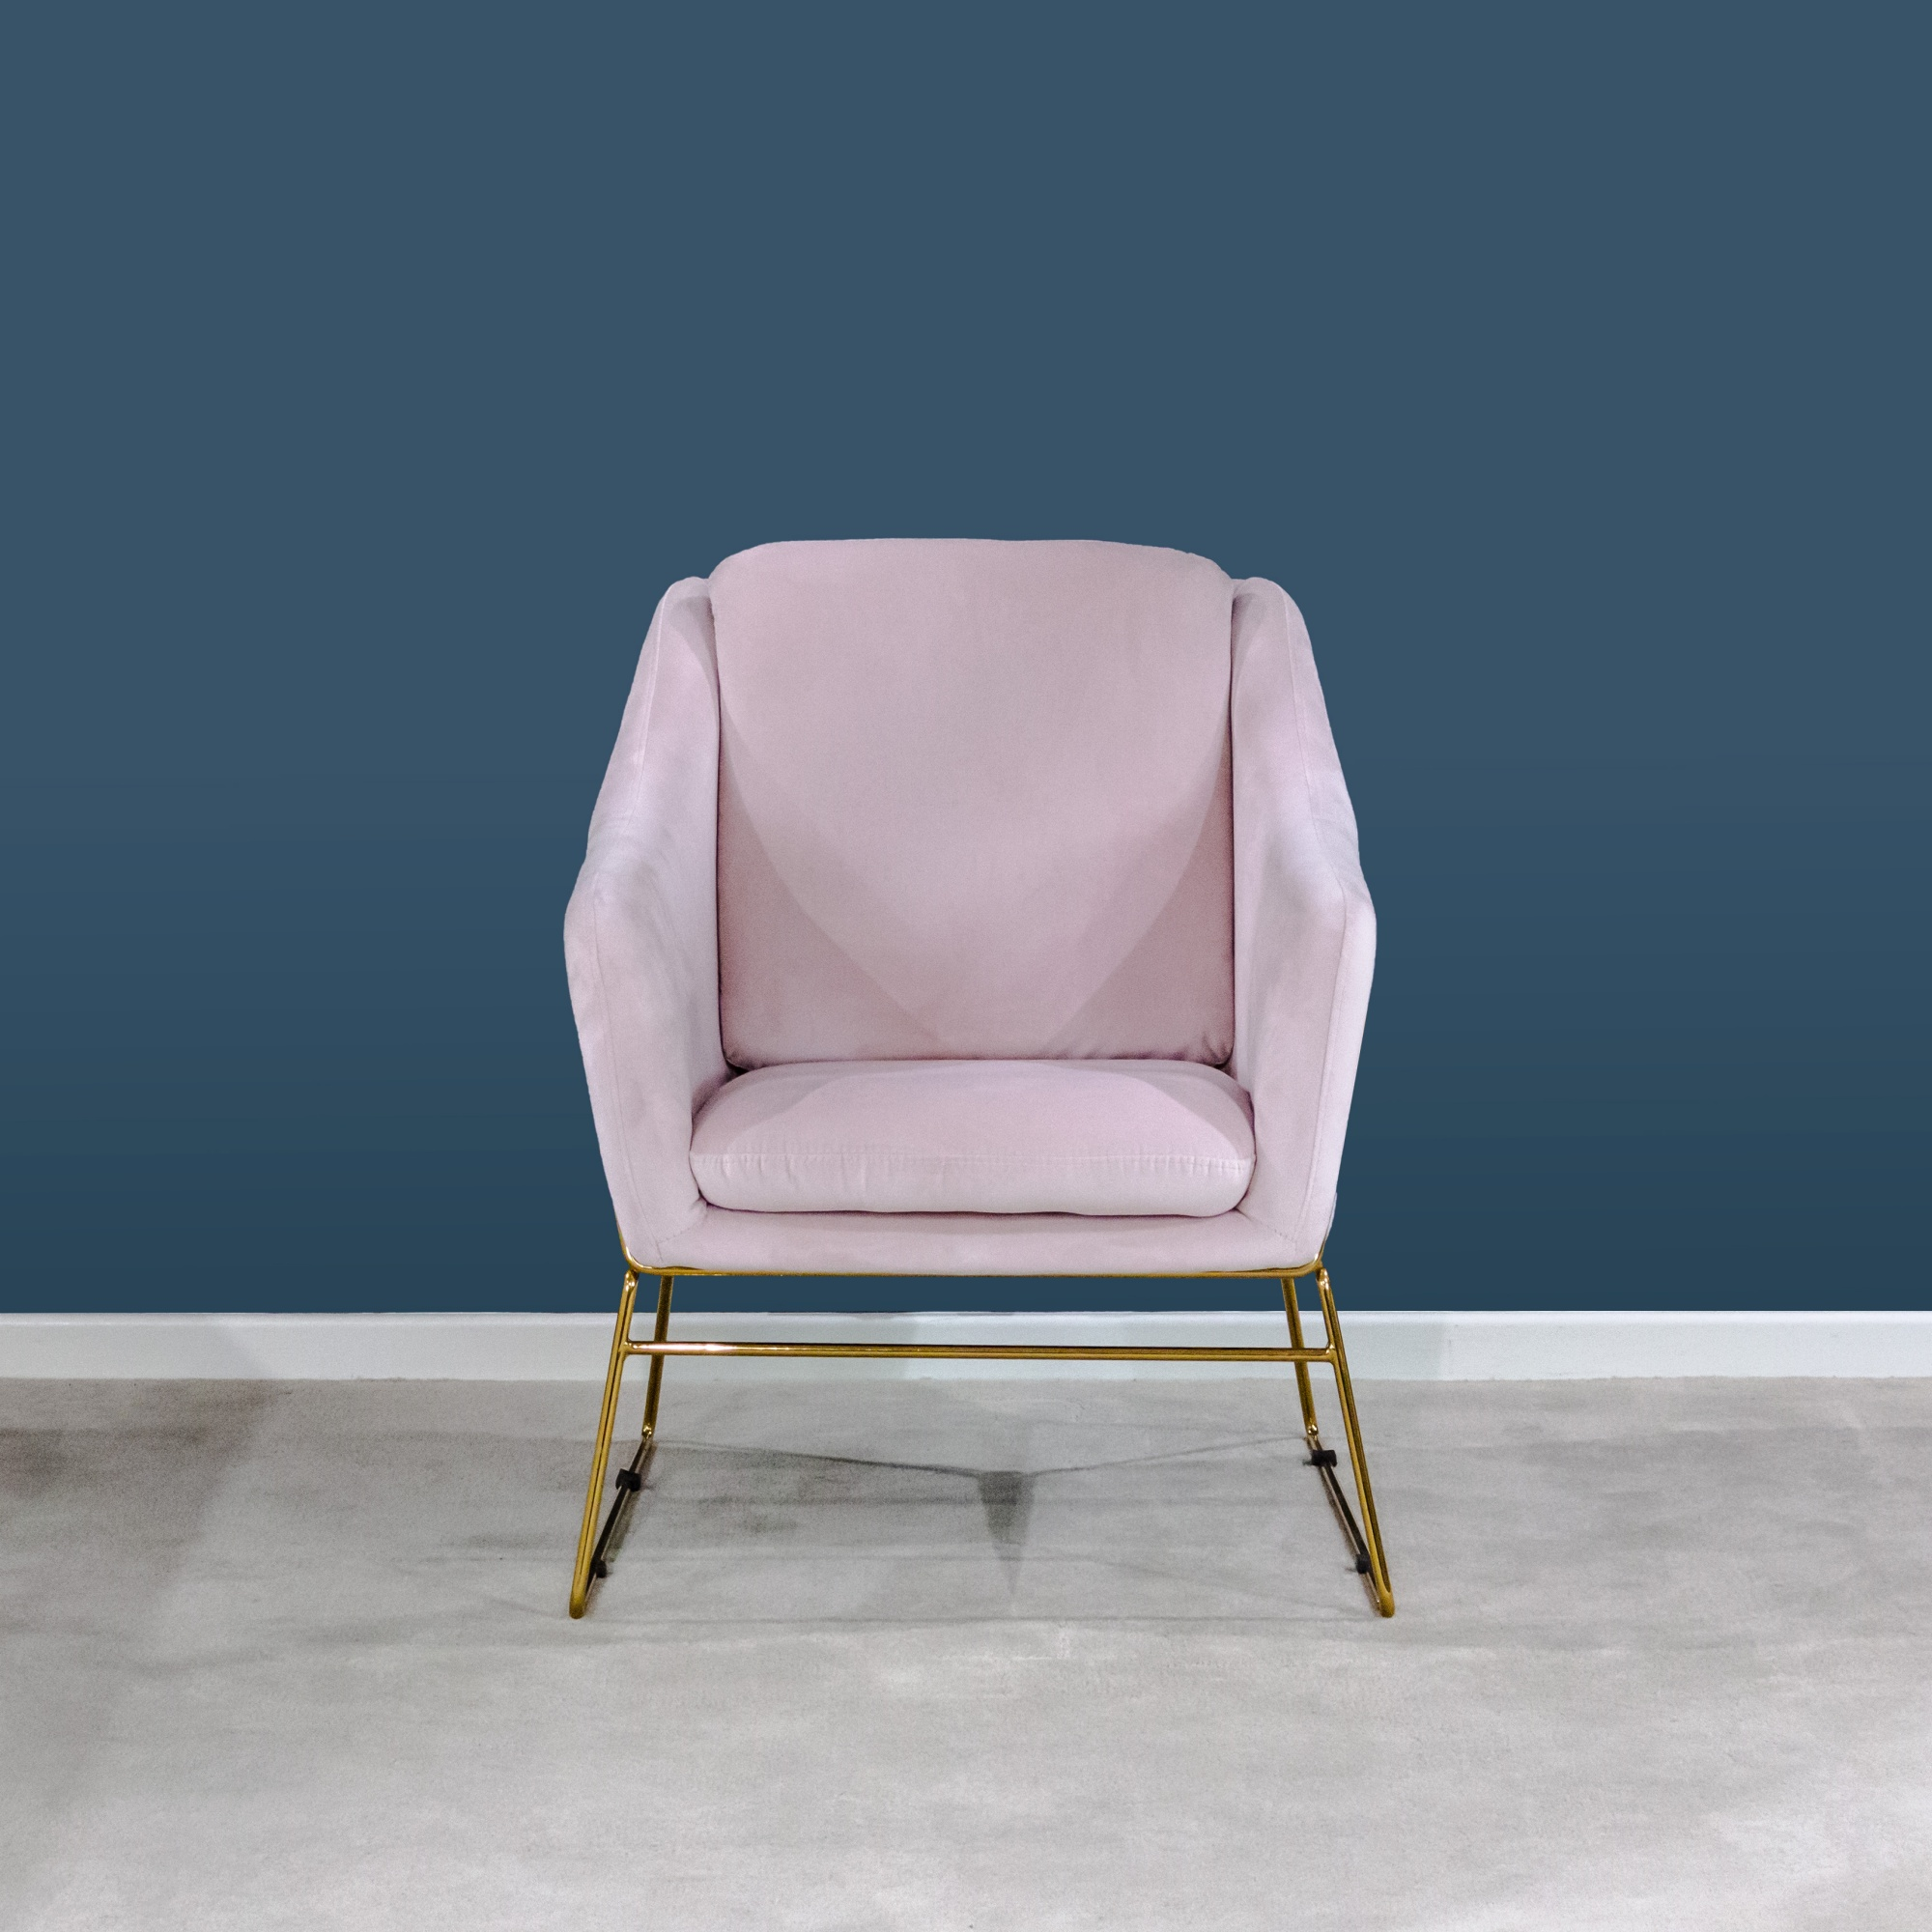 Astonishing Victoria James Holborn Accent Chair Pink Ocoug Best Dining Table And Chair Ideas Images Ocougorg